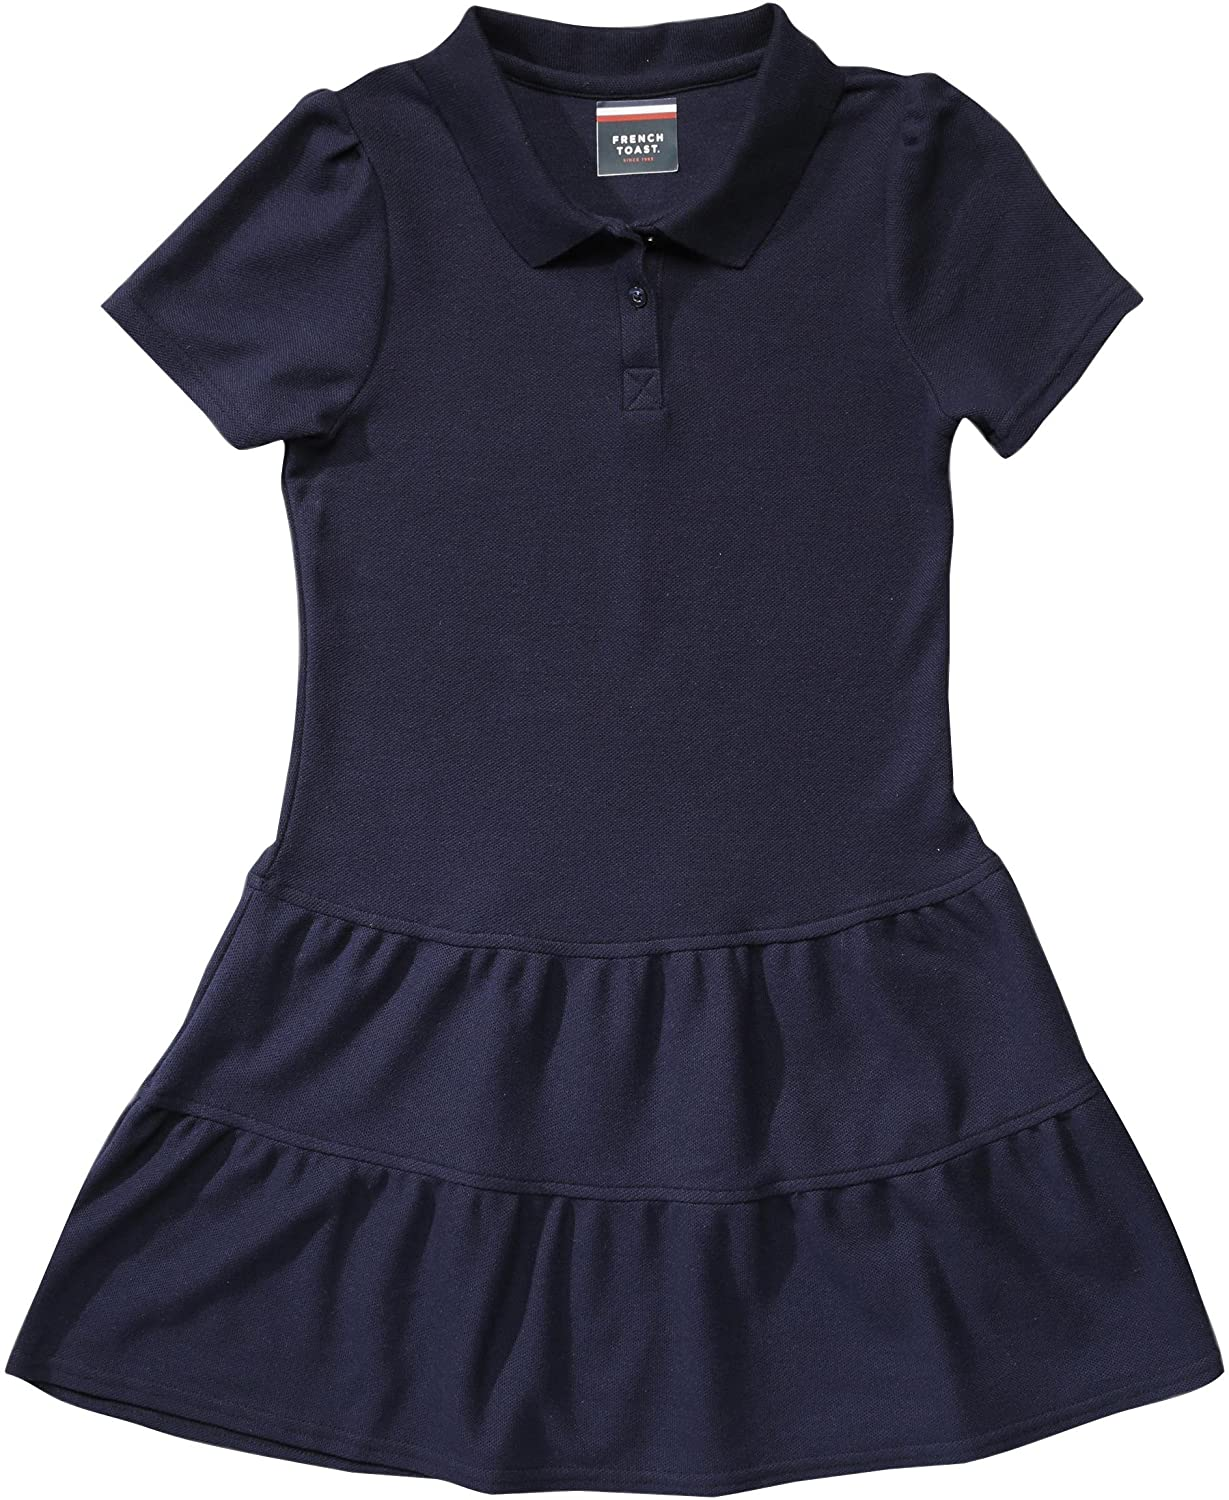 French Toast School Uniform Girls Ruffled Pique Polo Dress